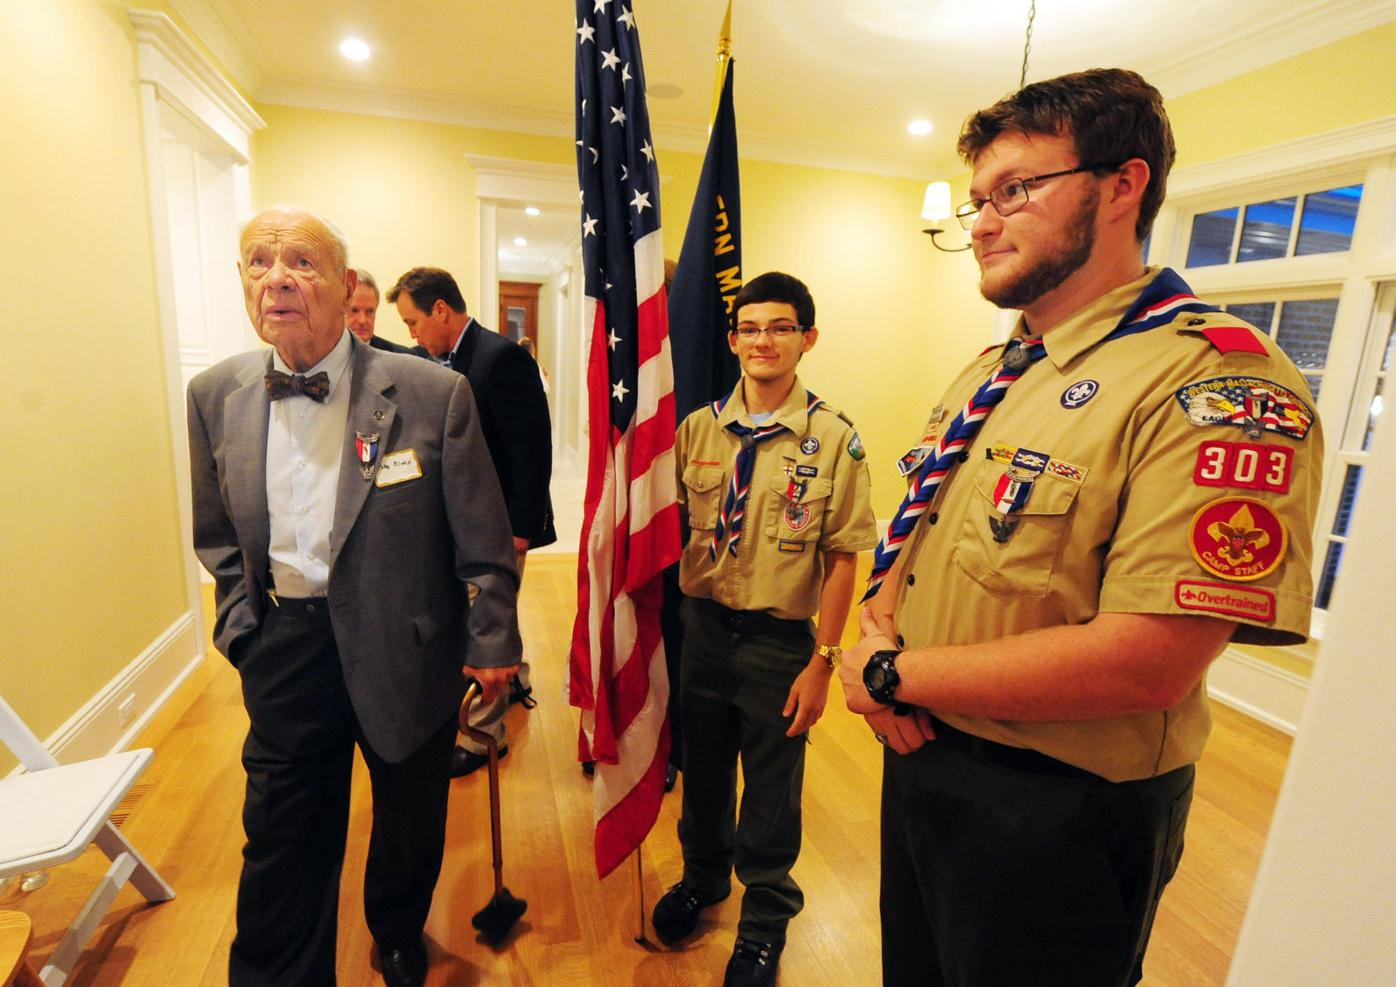 National Eagle Scout honor